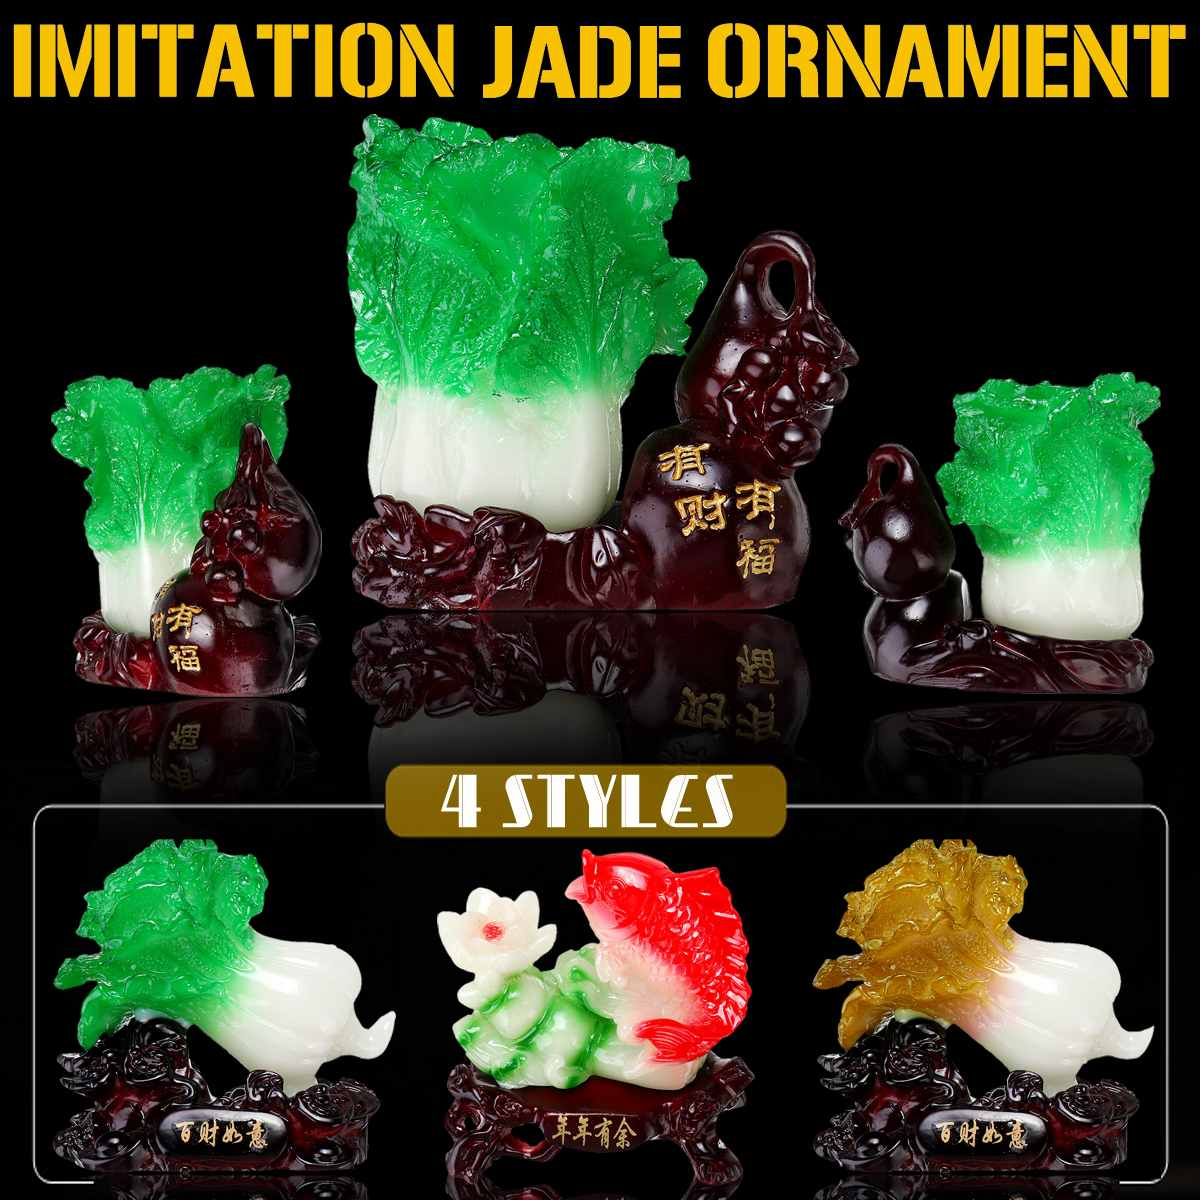 4 Styles Chinese Style Vegetable Cabbage Imitation Jade Ornaments Resin Home Bedroom Desk Decoration Birthday Gift